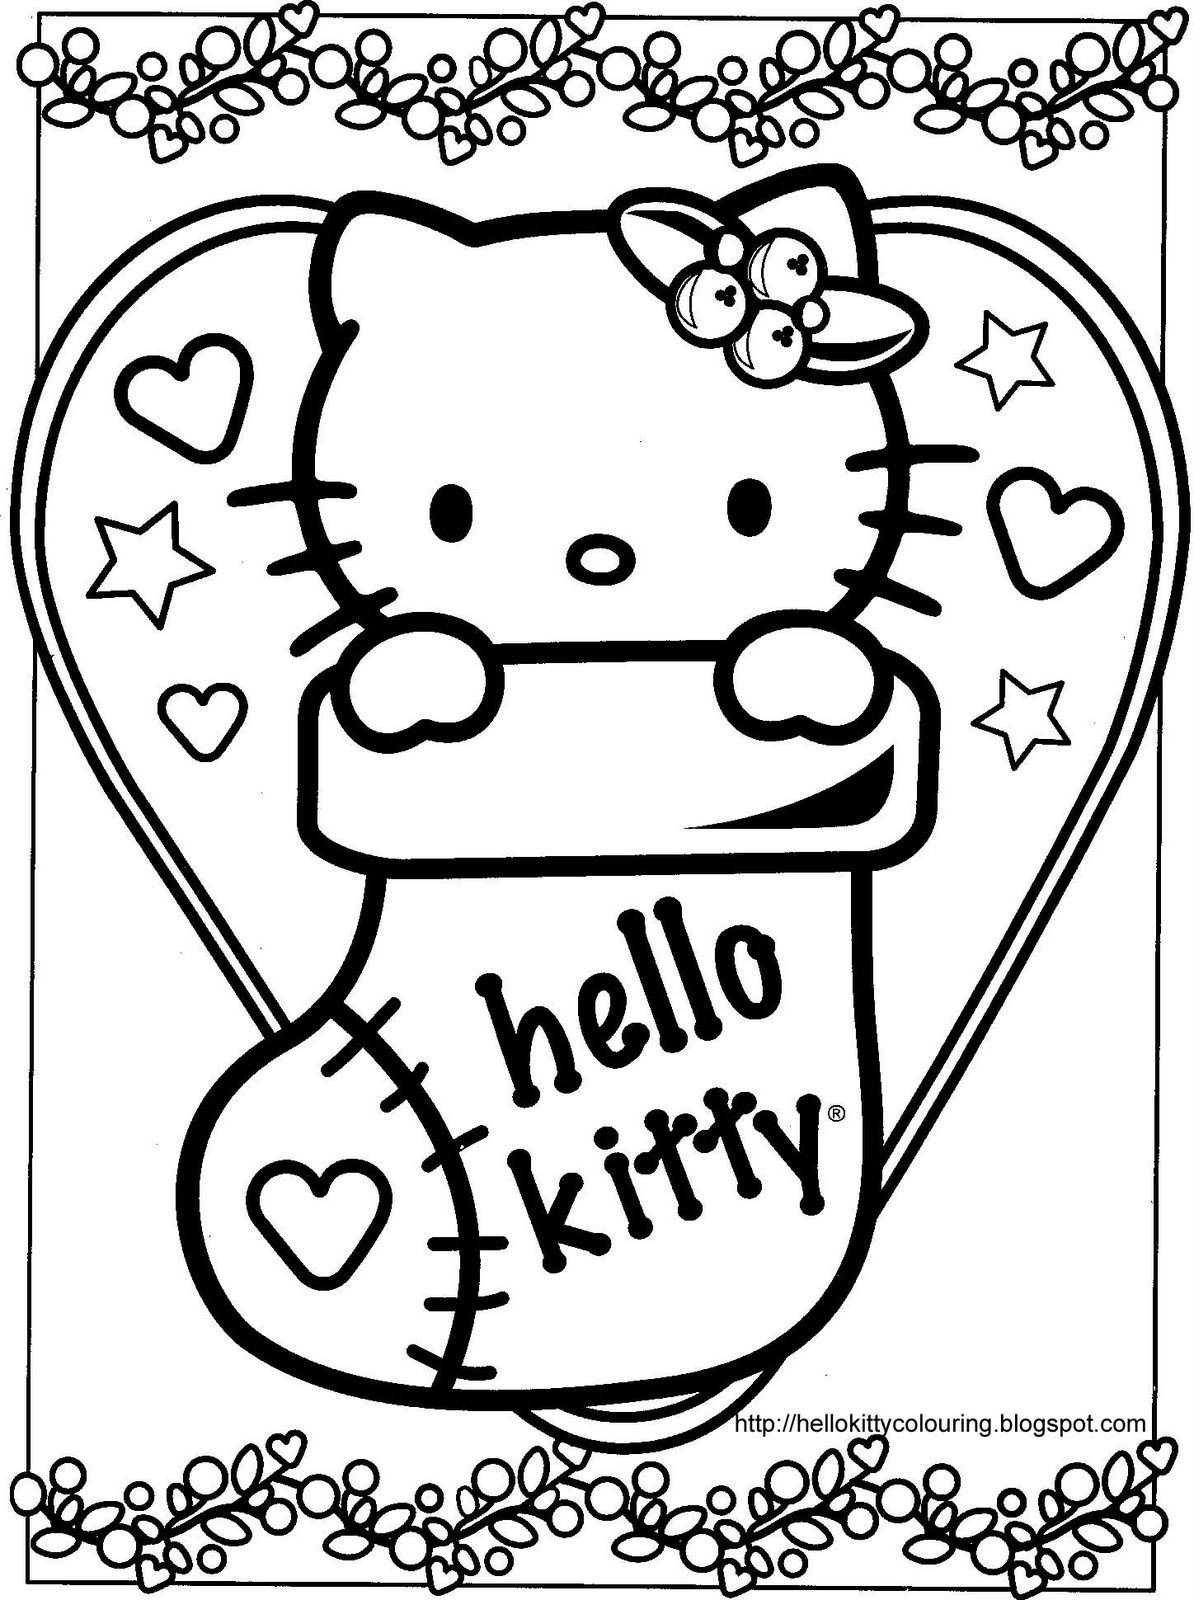 christmas hello kitty coloring pages hello kitty with christmas candy cane coloring page free kitty pages coloring hello christmas